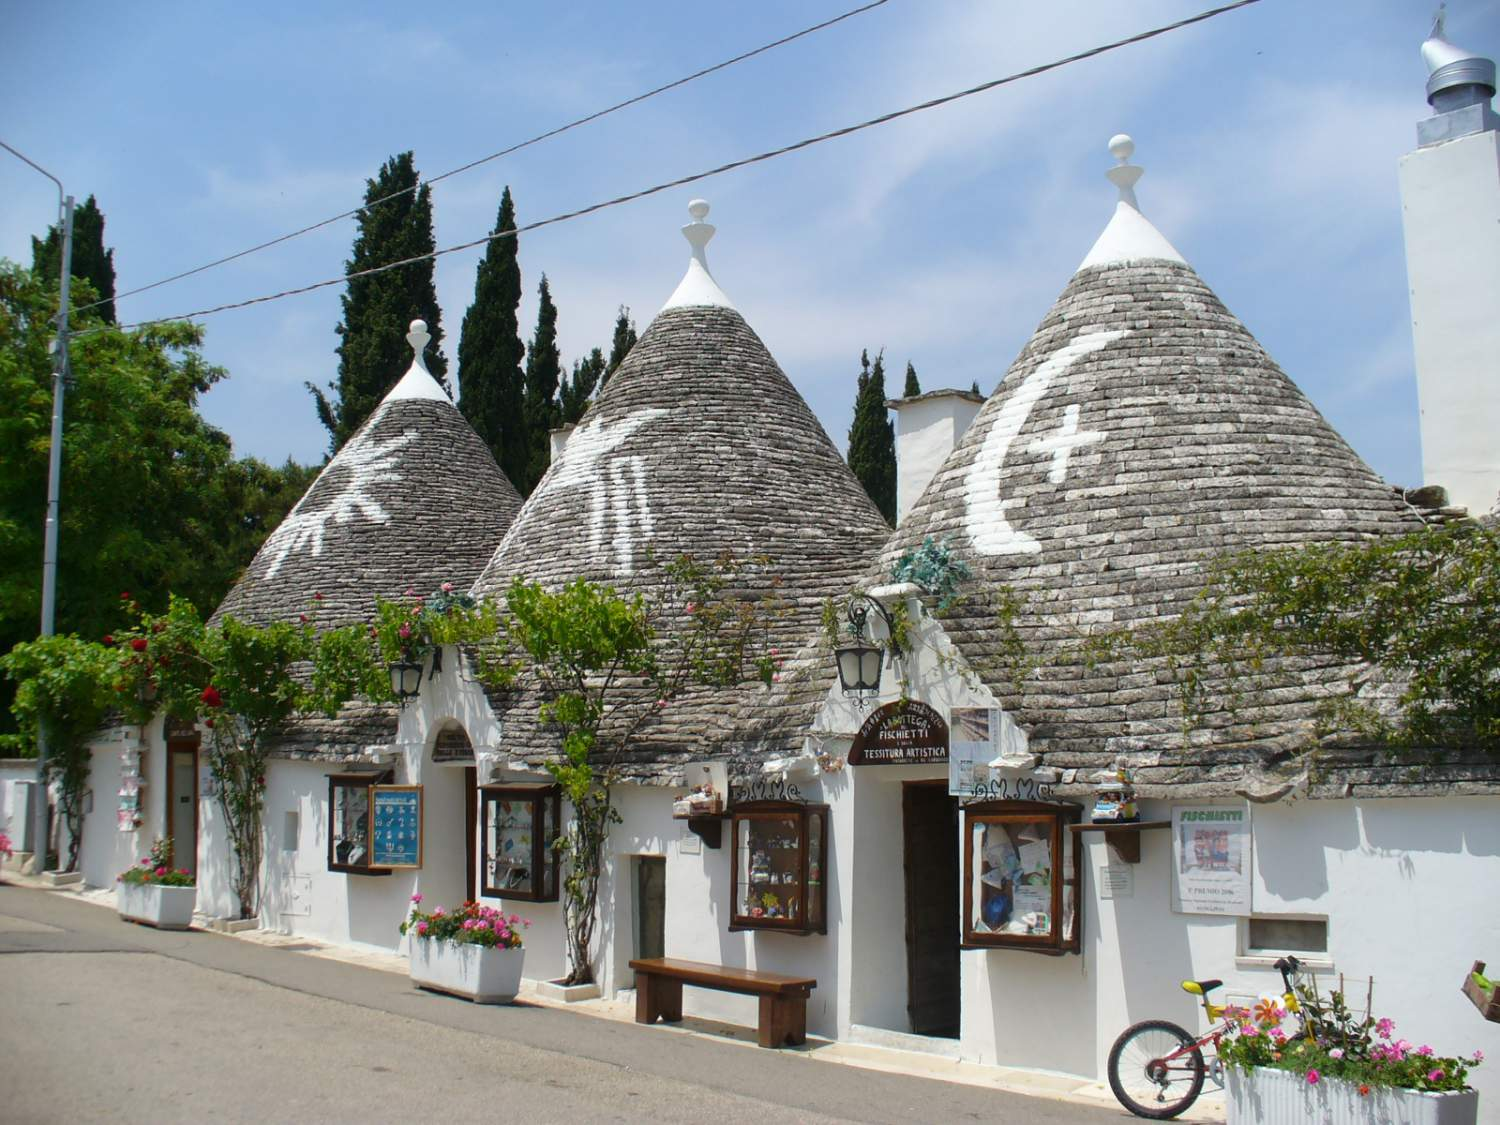 Trulli architecture in the region of Puglia, Italy